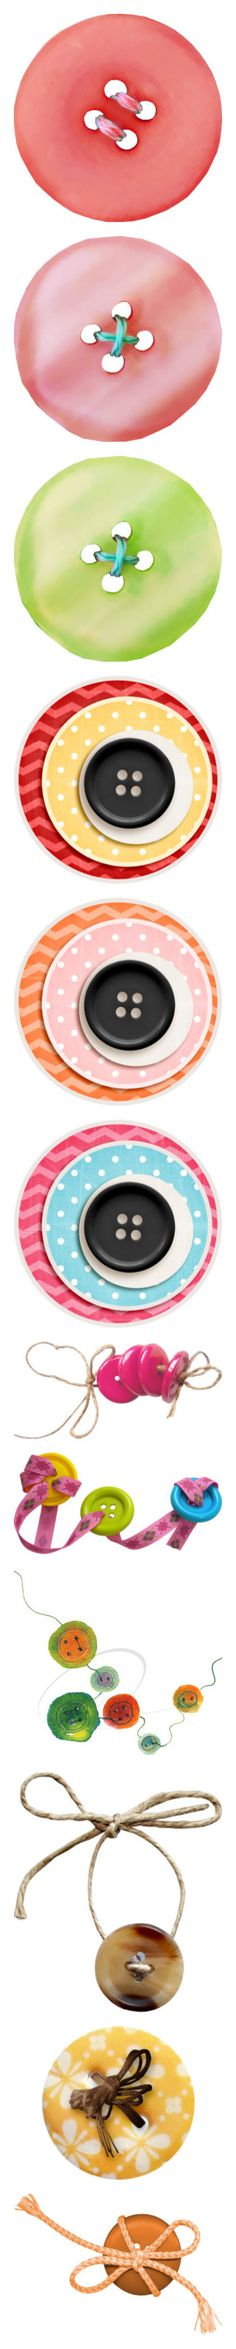 """button+"" by jennifertrimble ❤ liked on Polyvore featuring circles, sewing, overlays, circus, button, fillers, buttons, scrapbooking, home and home decor"